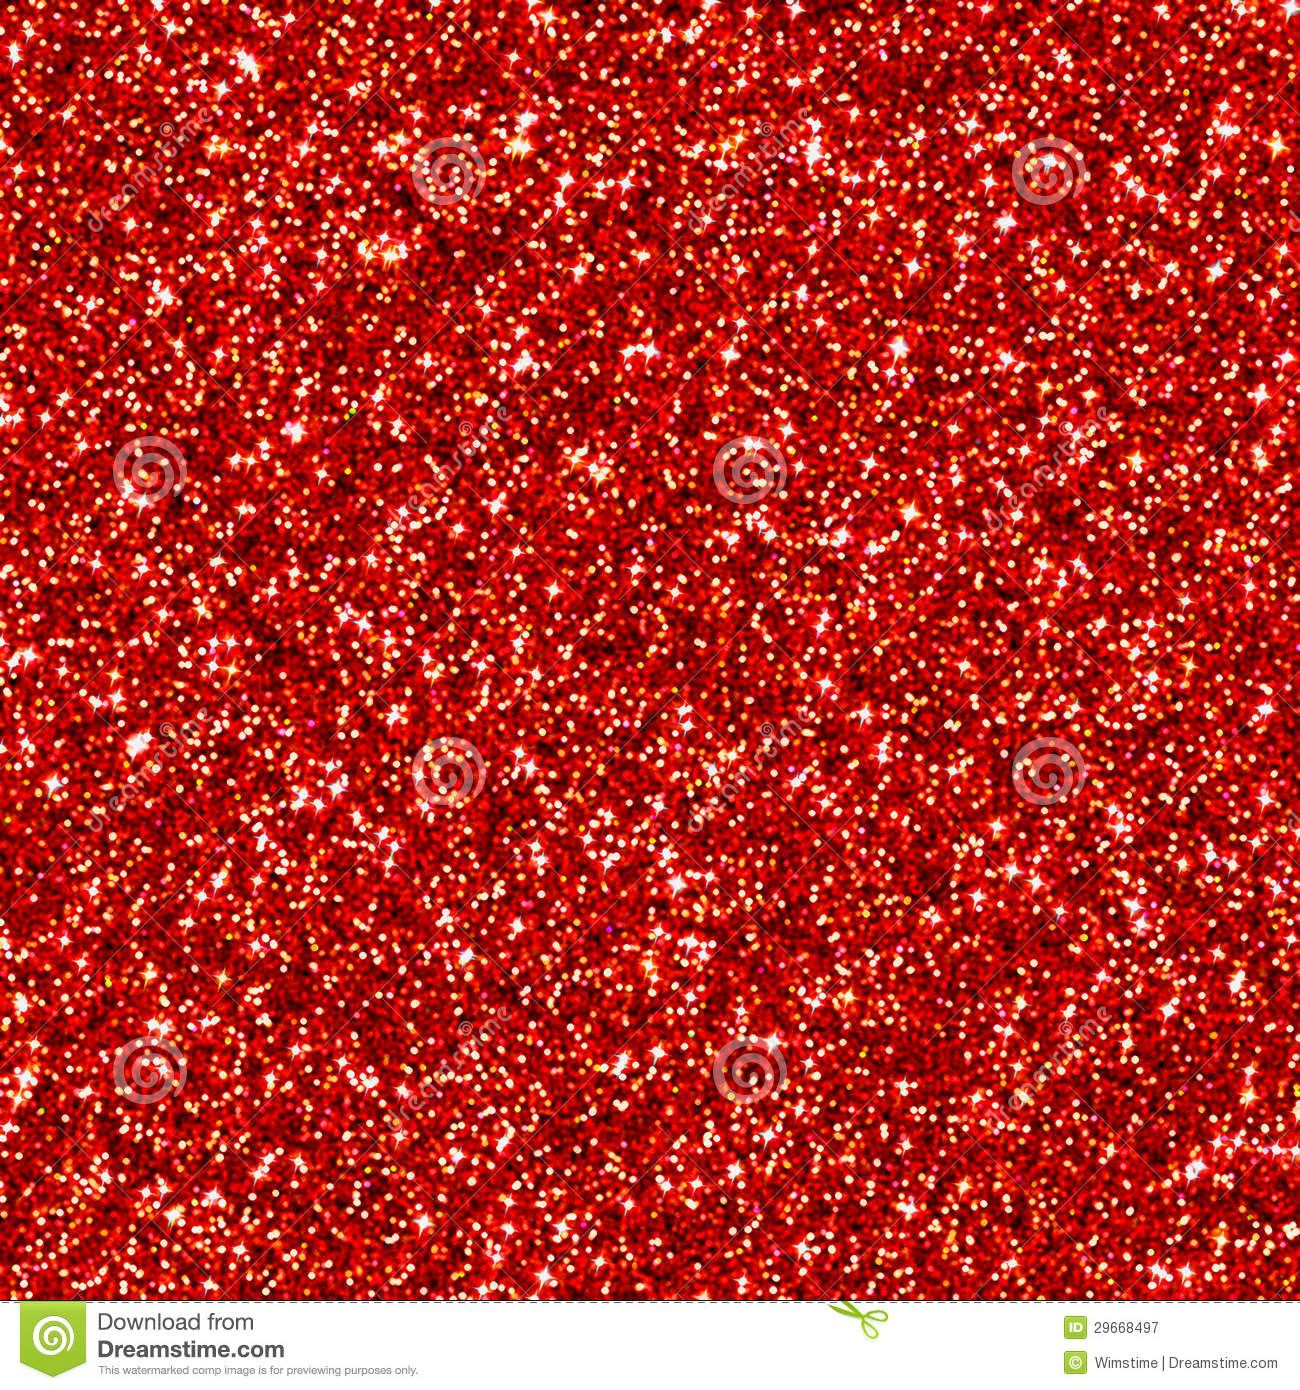 Animated Christmas Tree Wallpaper Red Glitter Stock Image Image Of Bokeh Particles Luxury